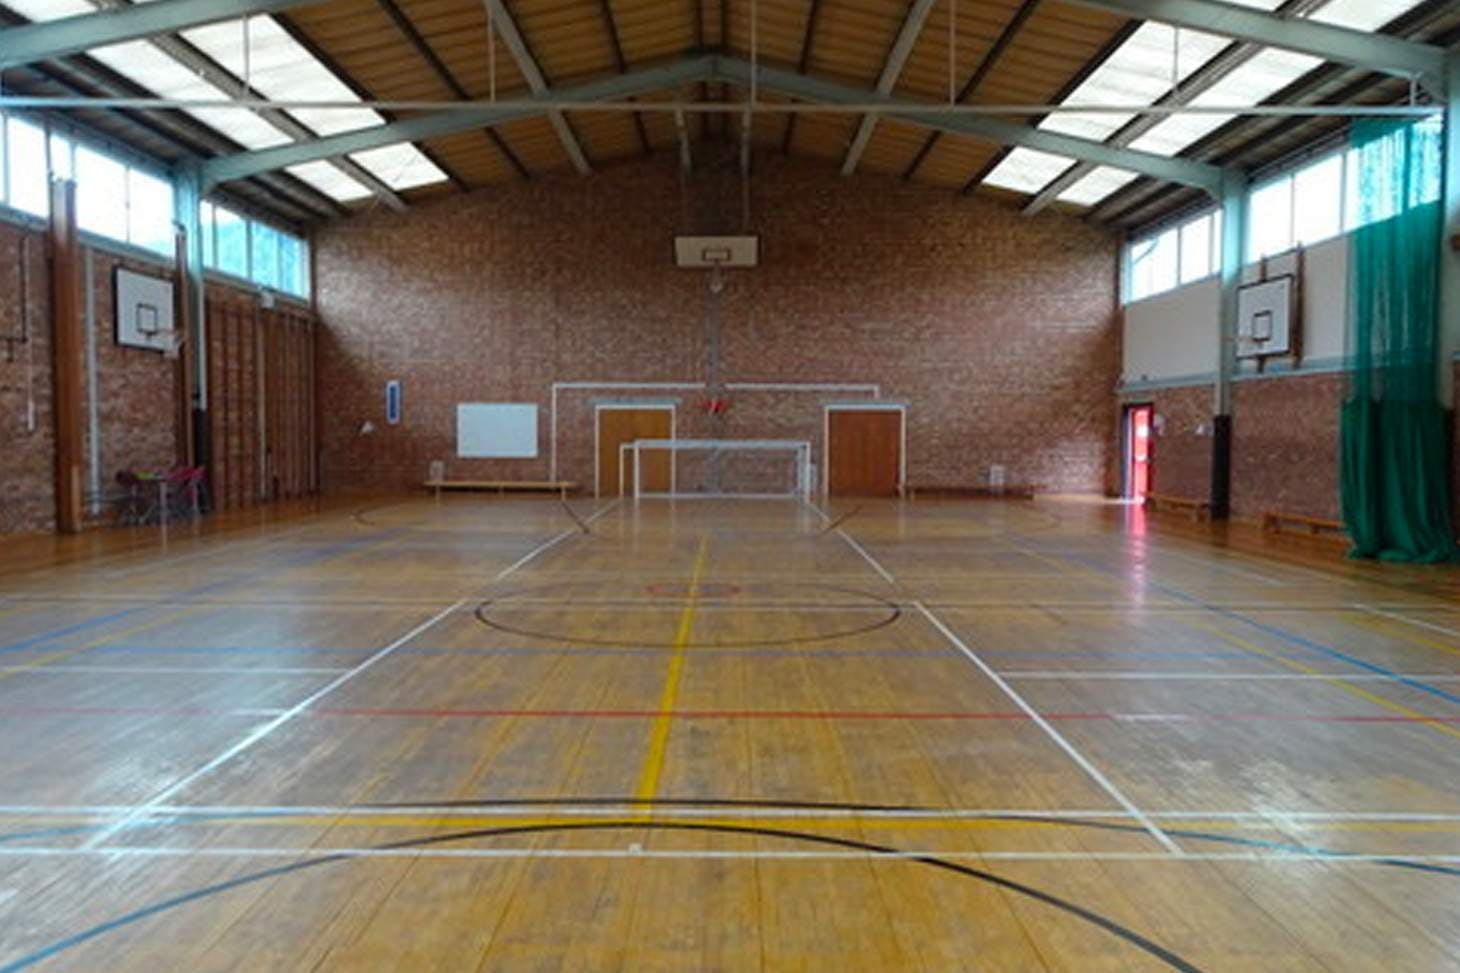 Trevelyan Middle School Court | Sports hall netball court